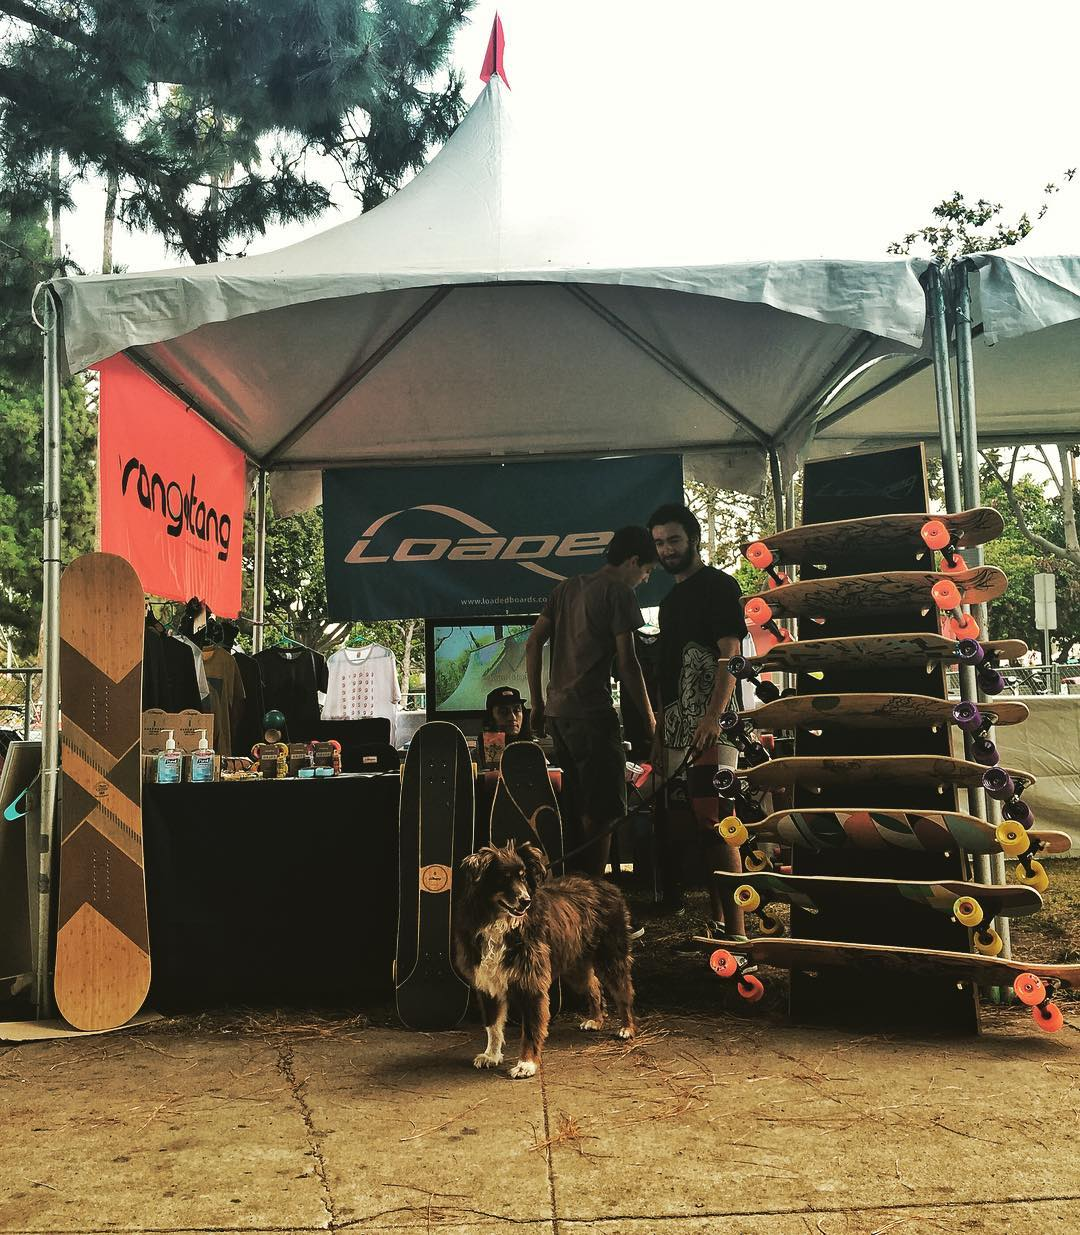 We out here at the Fiesta La Ballona in our local neighborhood of Culver City!  Stop by our booth near the petting zoo and bike valet! #FLB2016 #FiestaLaBallona #CulverCity #Orangatang #LoadedBoards